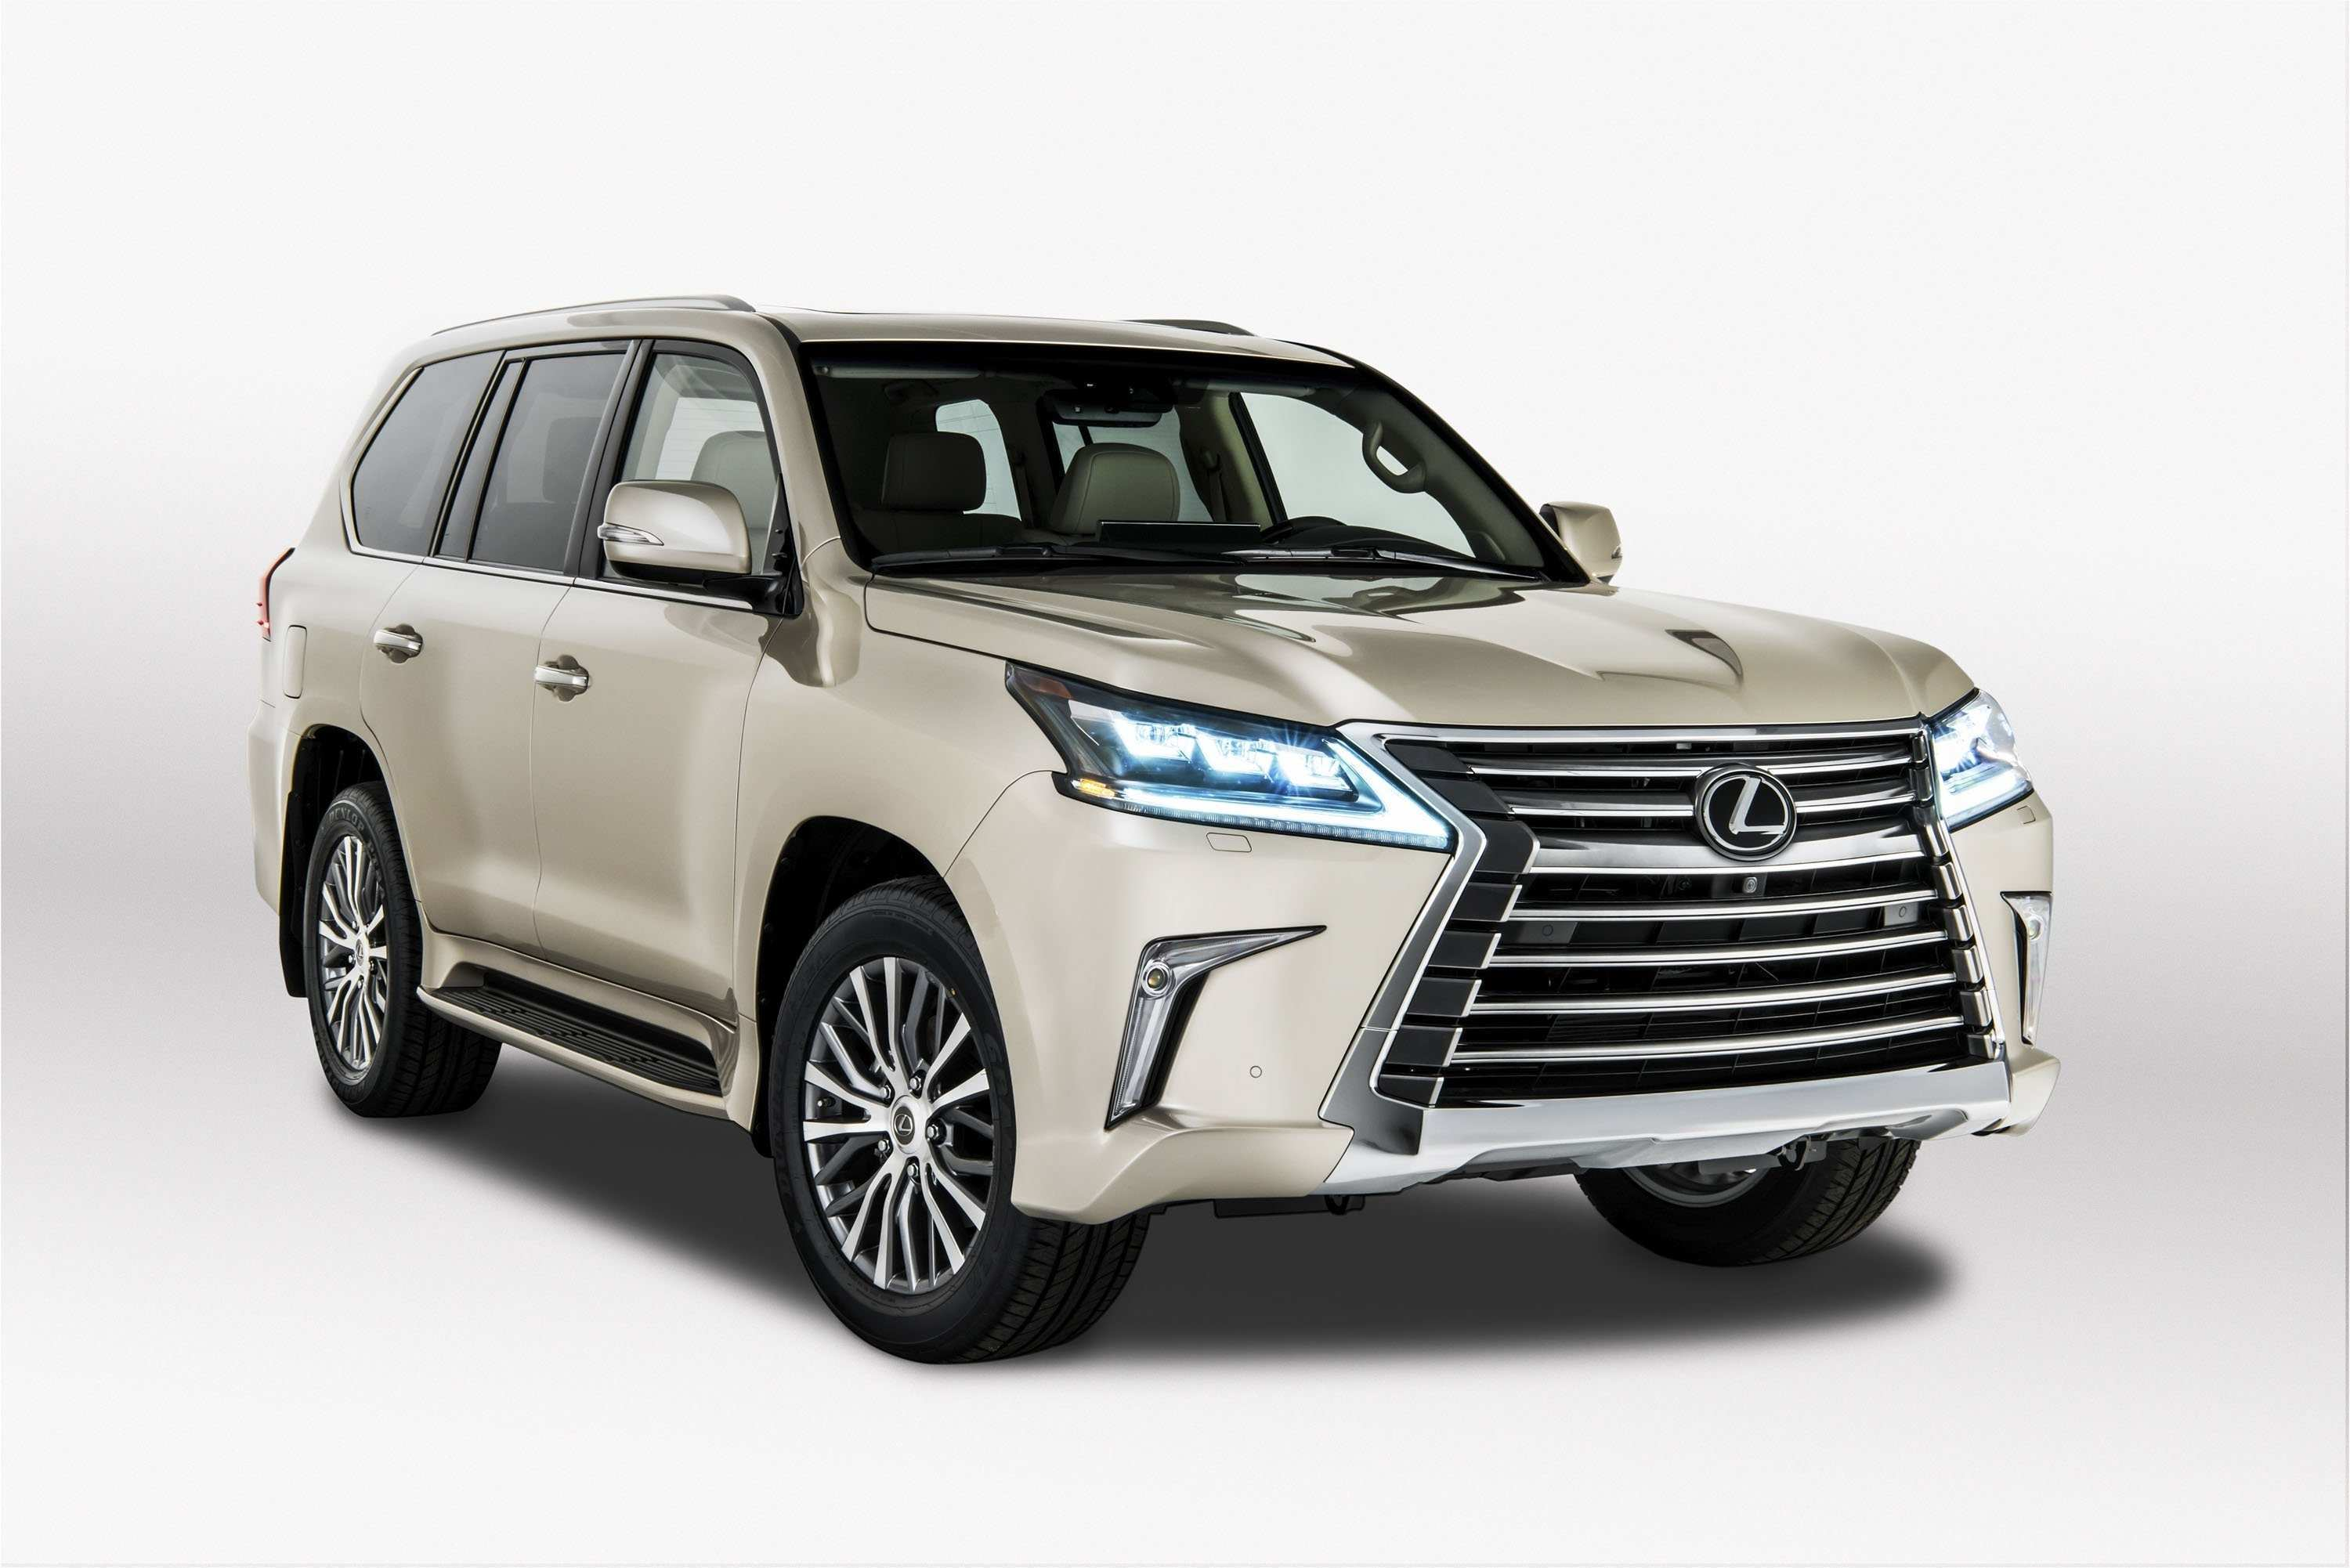 65 Concept of 2019 Lexus Gx470 Spy Shoot with 2019 Lexus Gx470